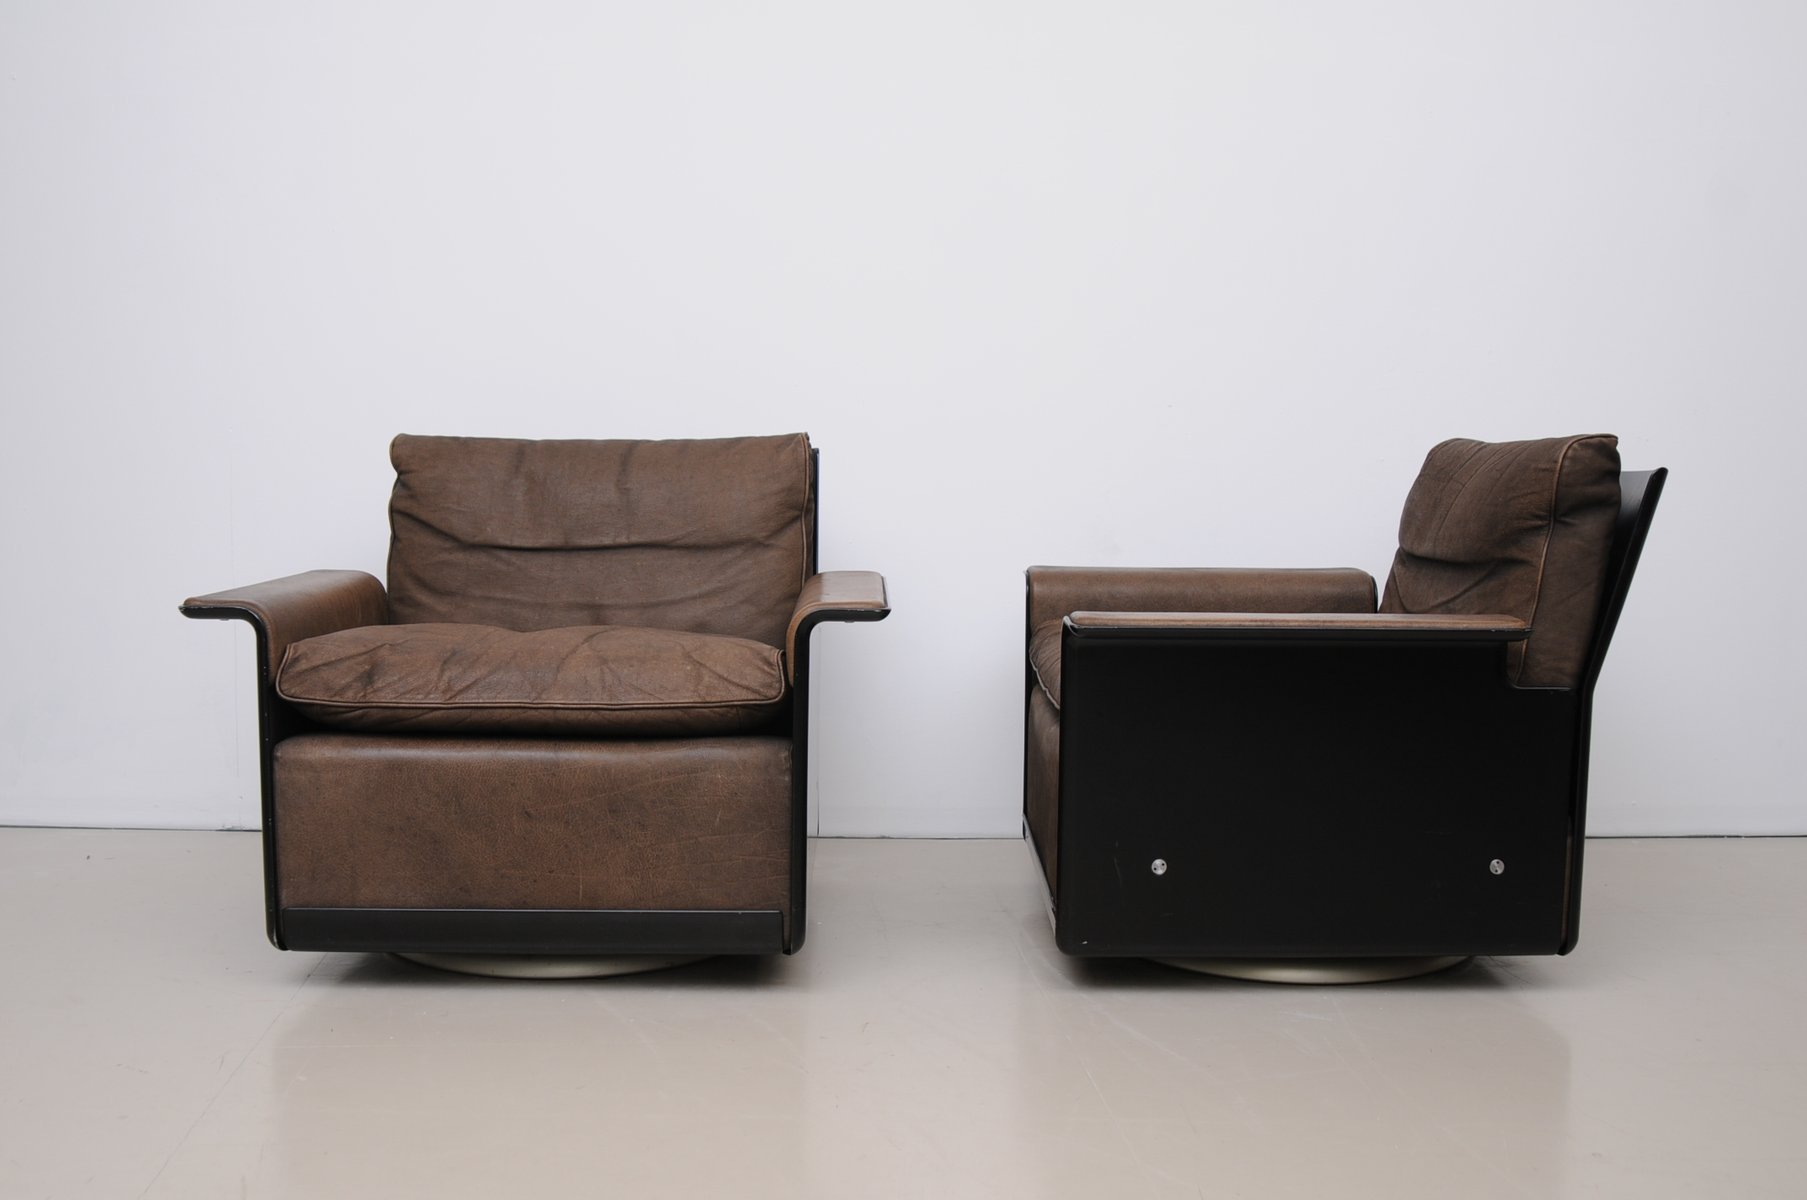 Easy chair recliner - Model 620 Brown Leather Easy Chair By Dieter Rams For Vitsoe